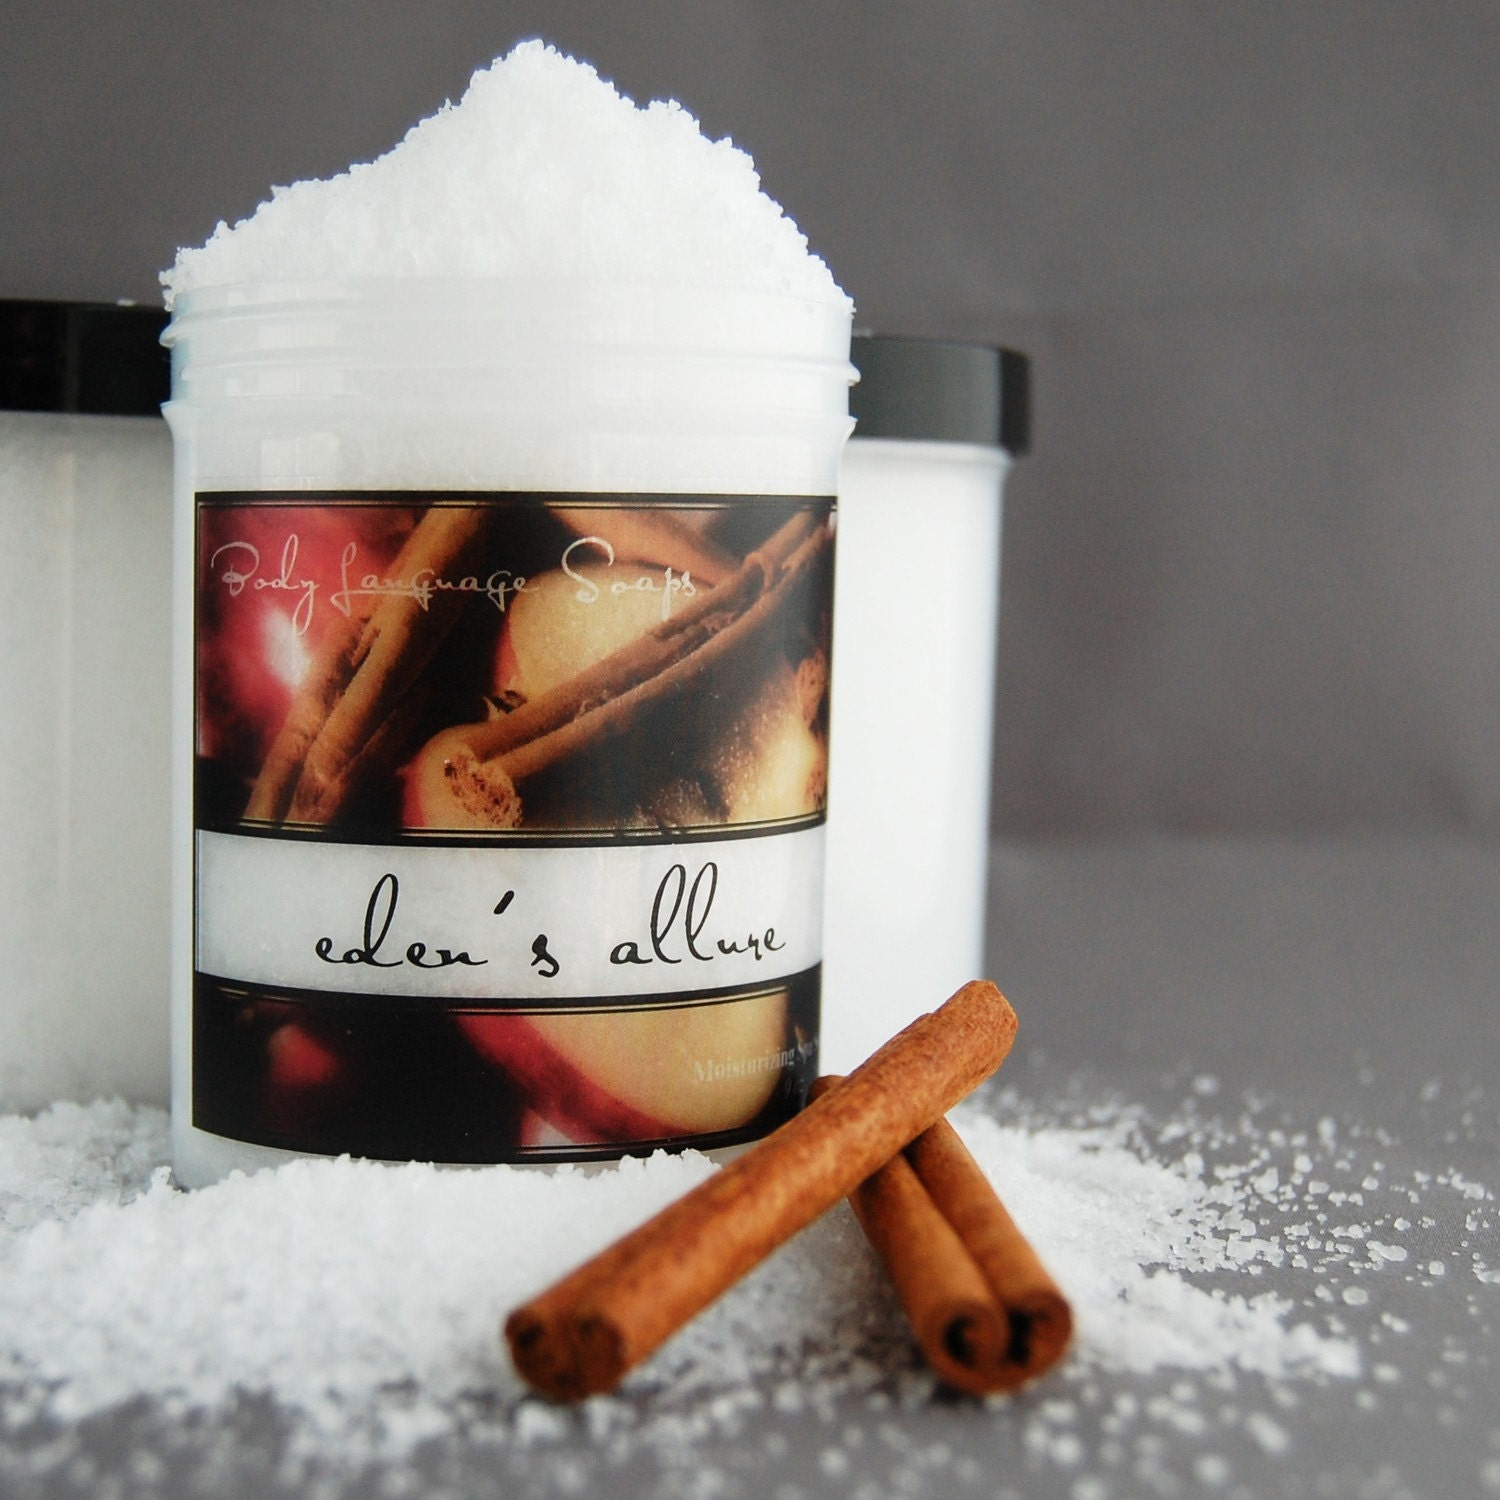 NEW Eden's Allure Spa Soak - Juicy Apples and Autumn Spices Scented Bath Salts